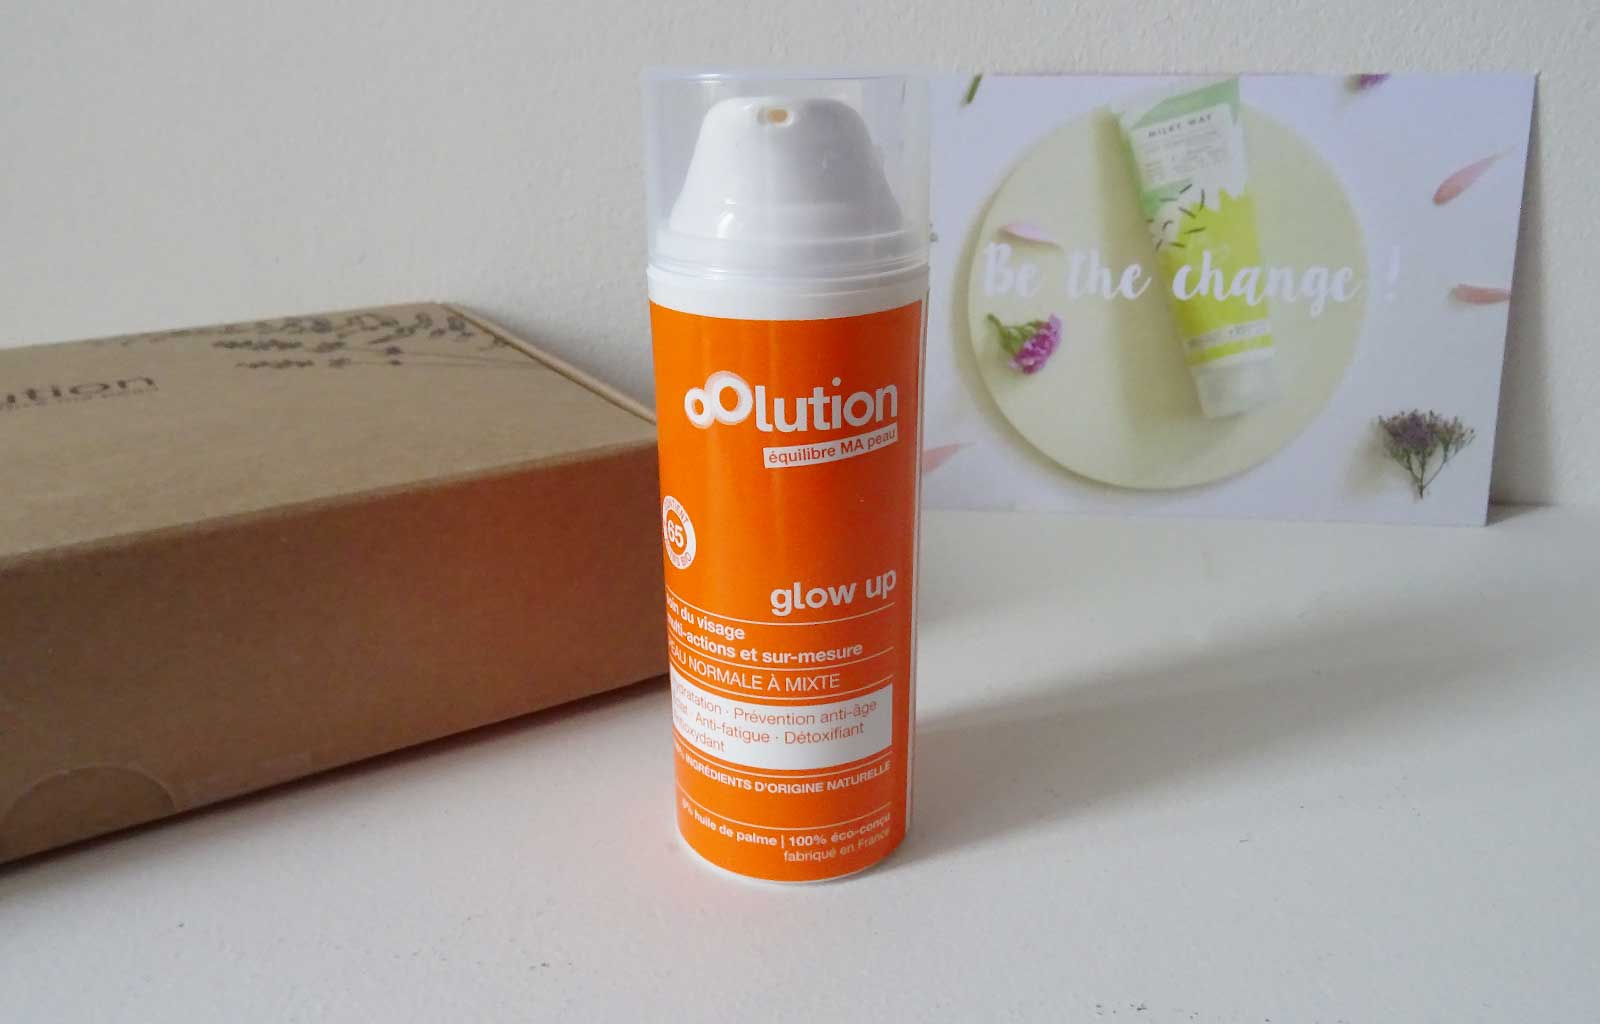 crème hydratante Glow Up oolution